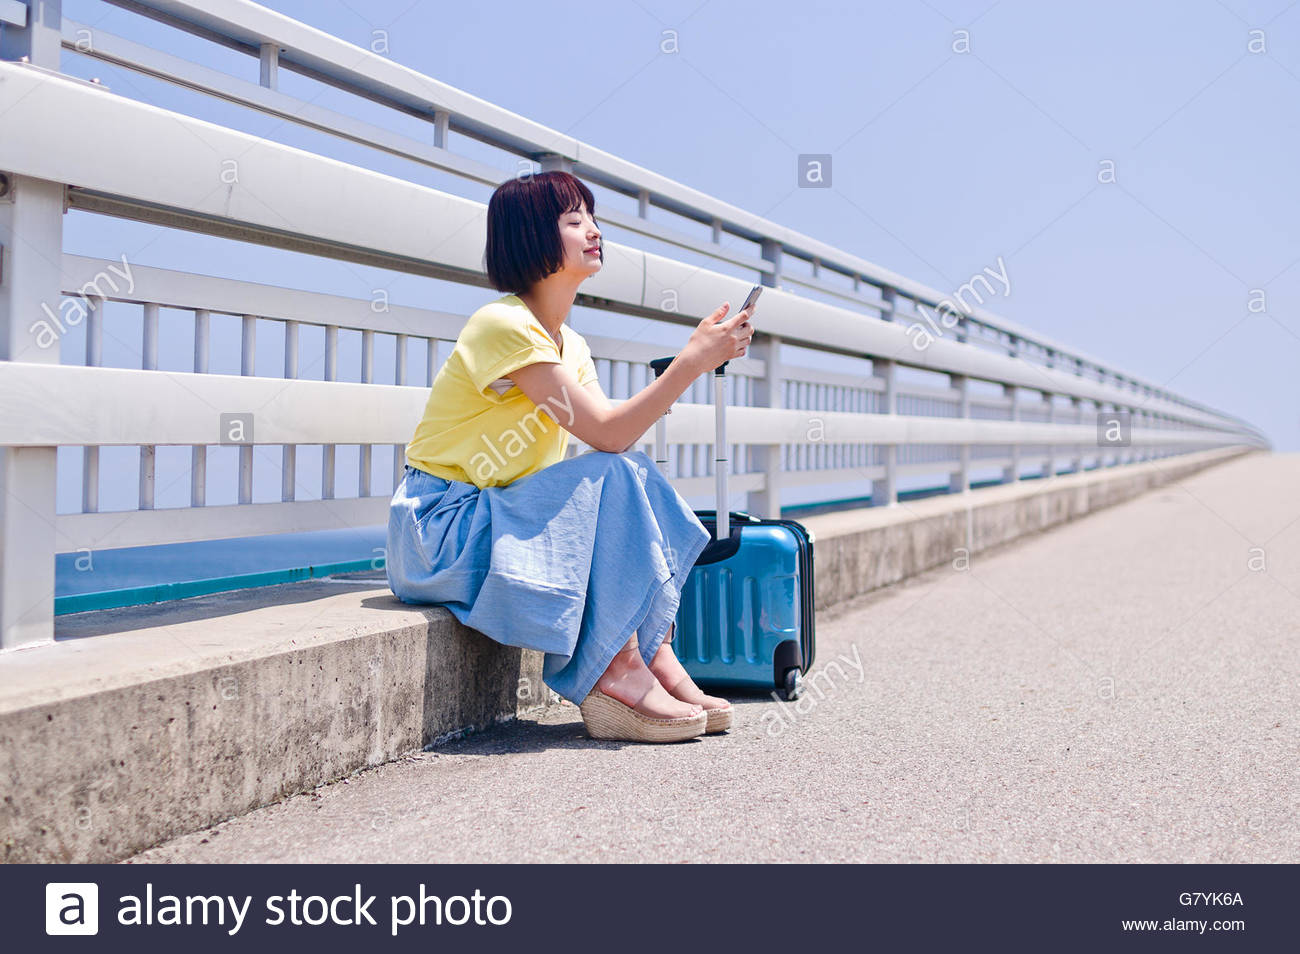 Woman sitting and operating smart phone - Stock Image